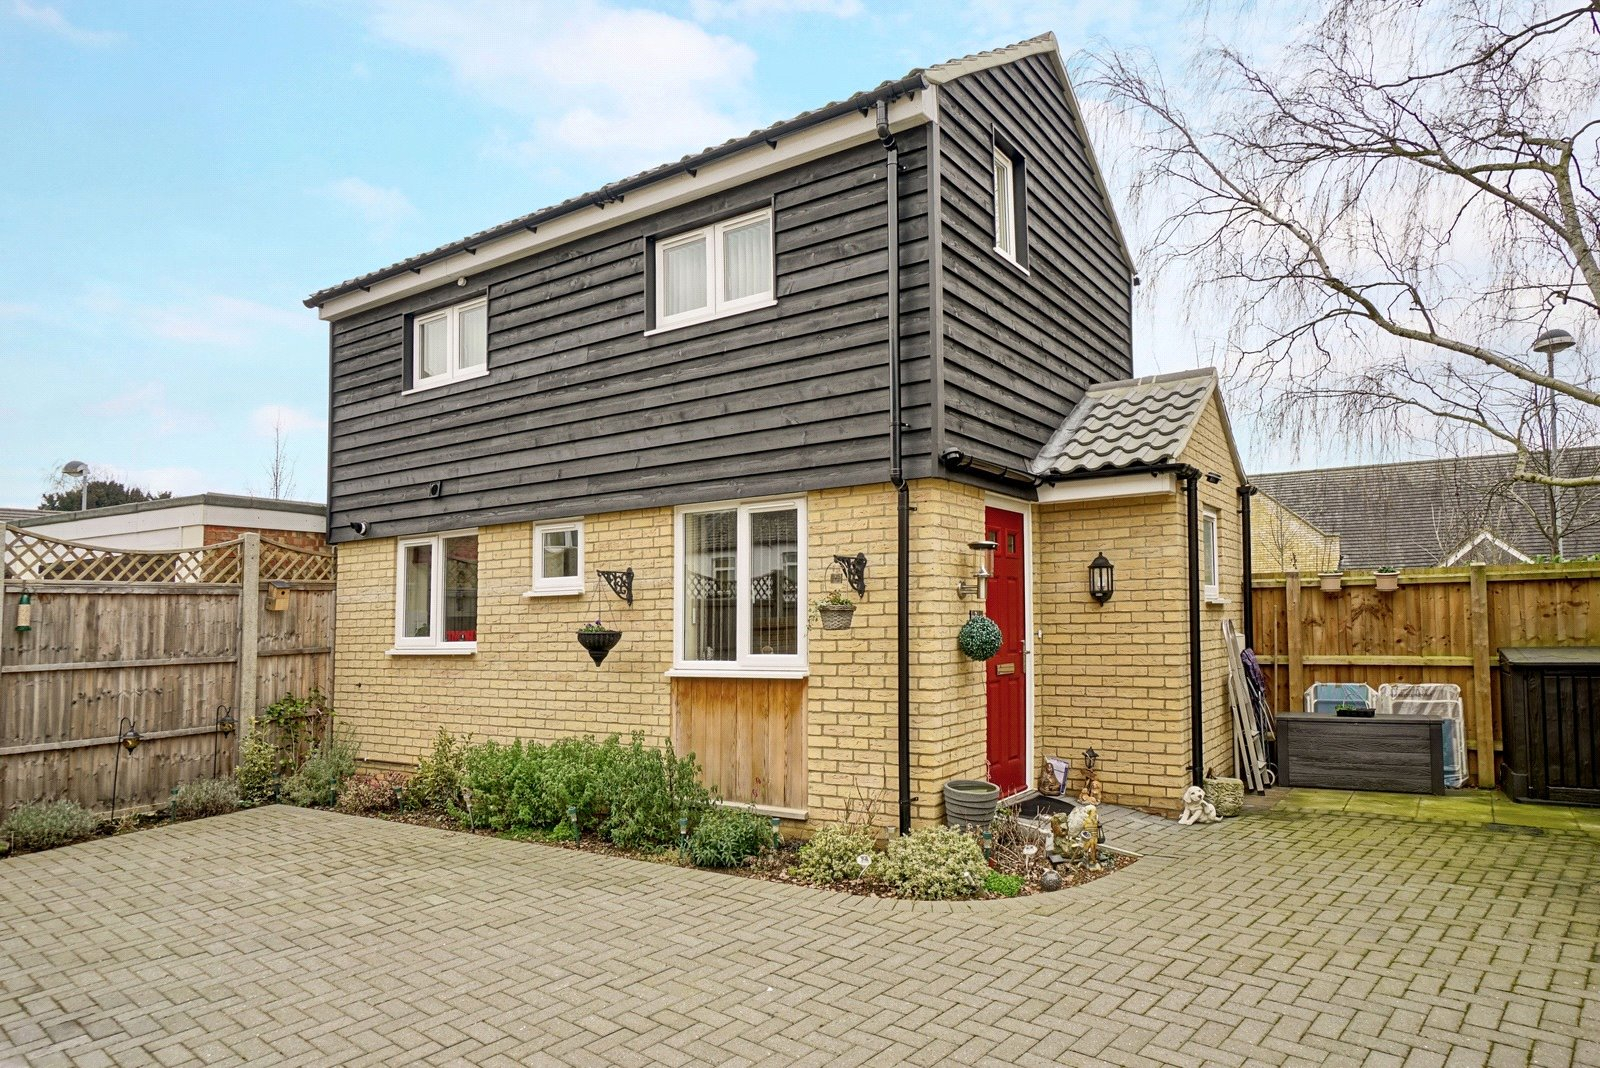 1 bed house for sale in Eynesbury, PE19